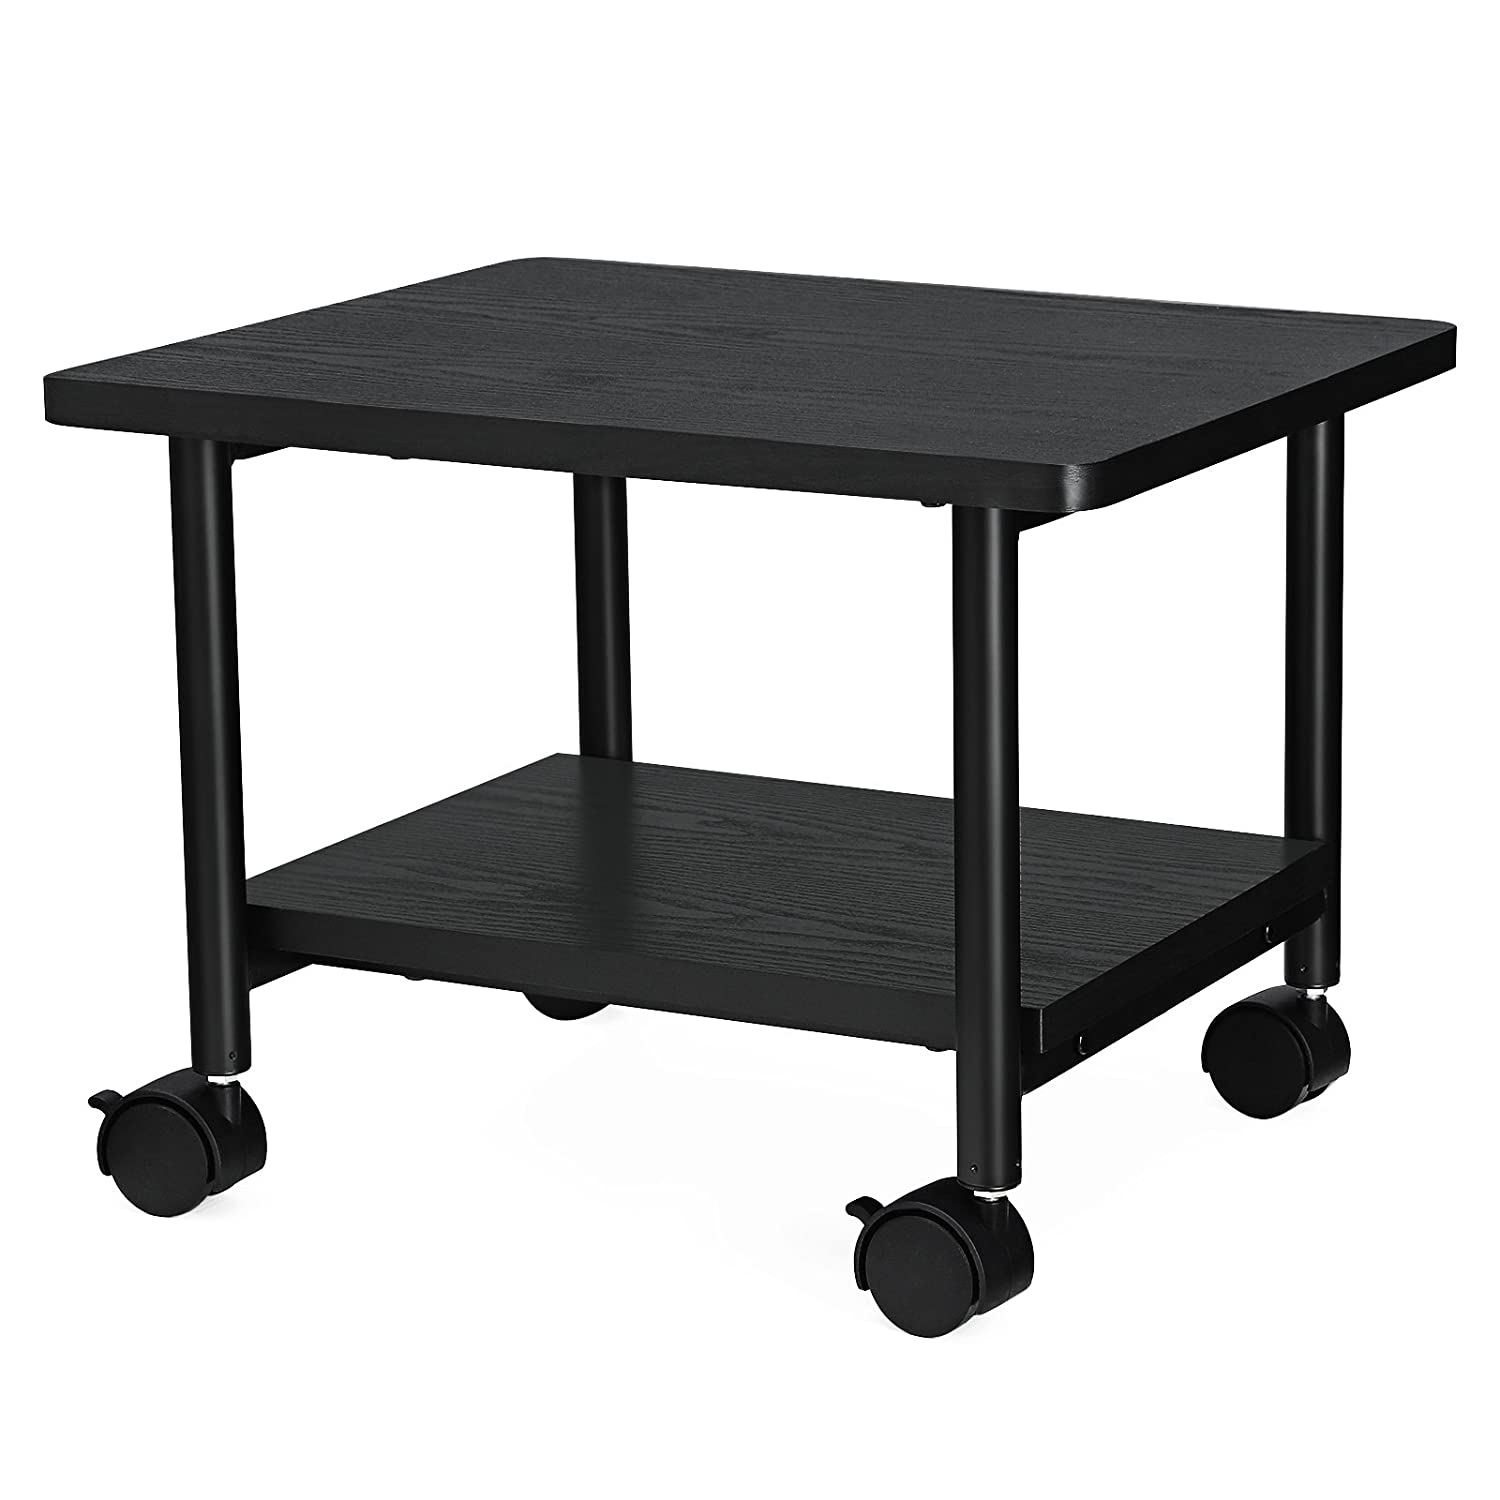 SONGMICS Under Desk Printer Stand and Mobile Machine Cart with Shelf Heavy Duty Storage Rack for Office Home Black UOPS02B Printer Rack